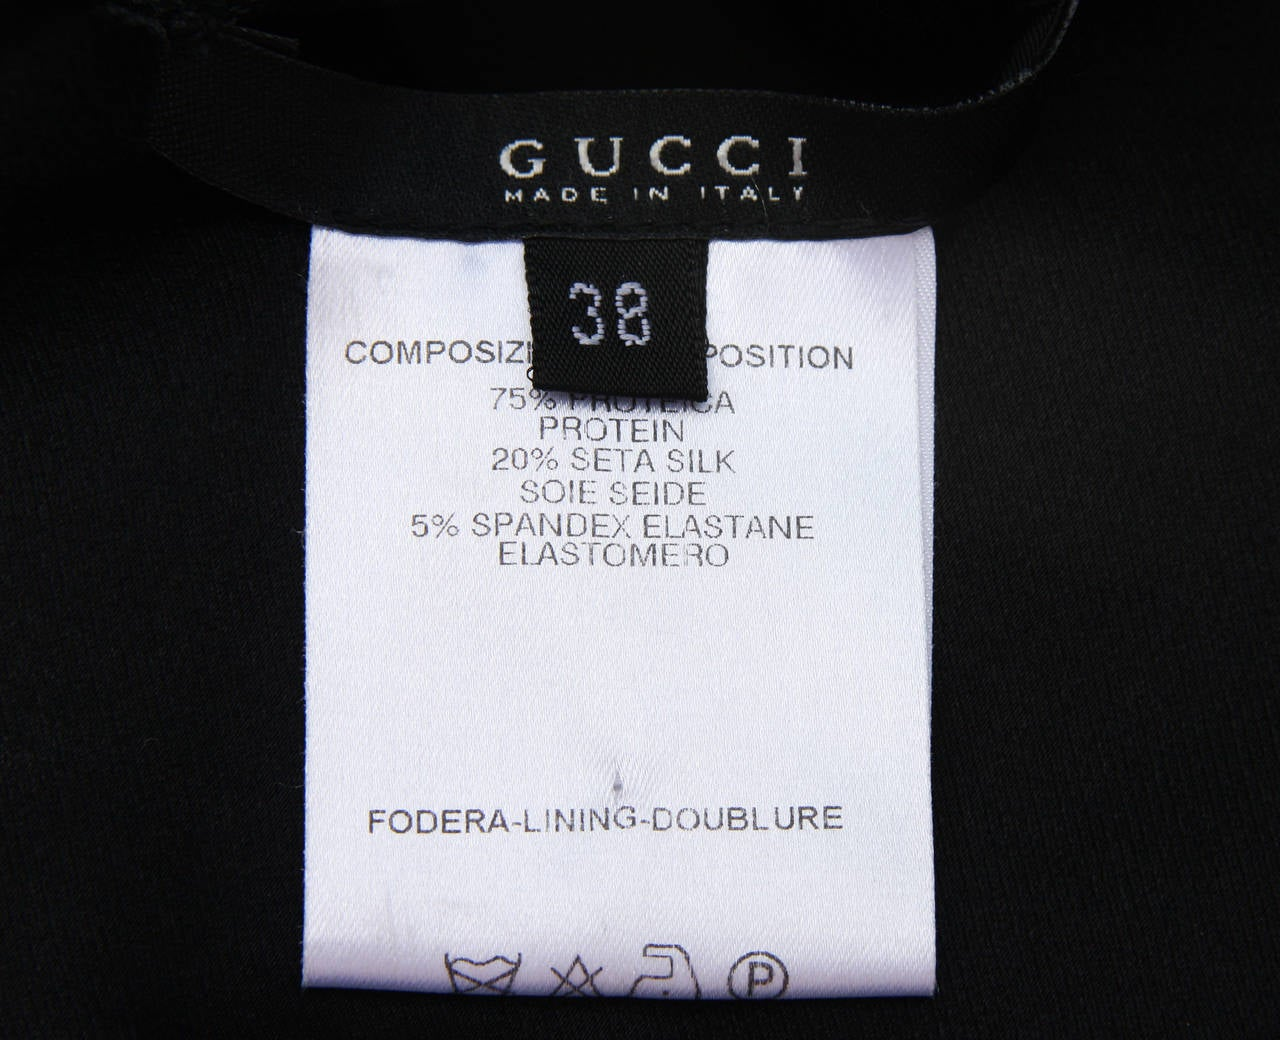 2003 Tom Ford for Gucci black bandage gown 8